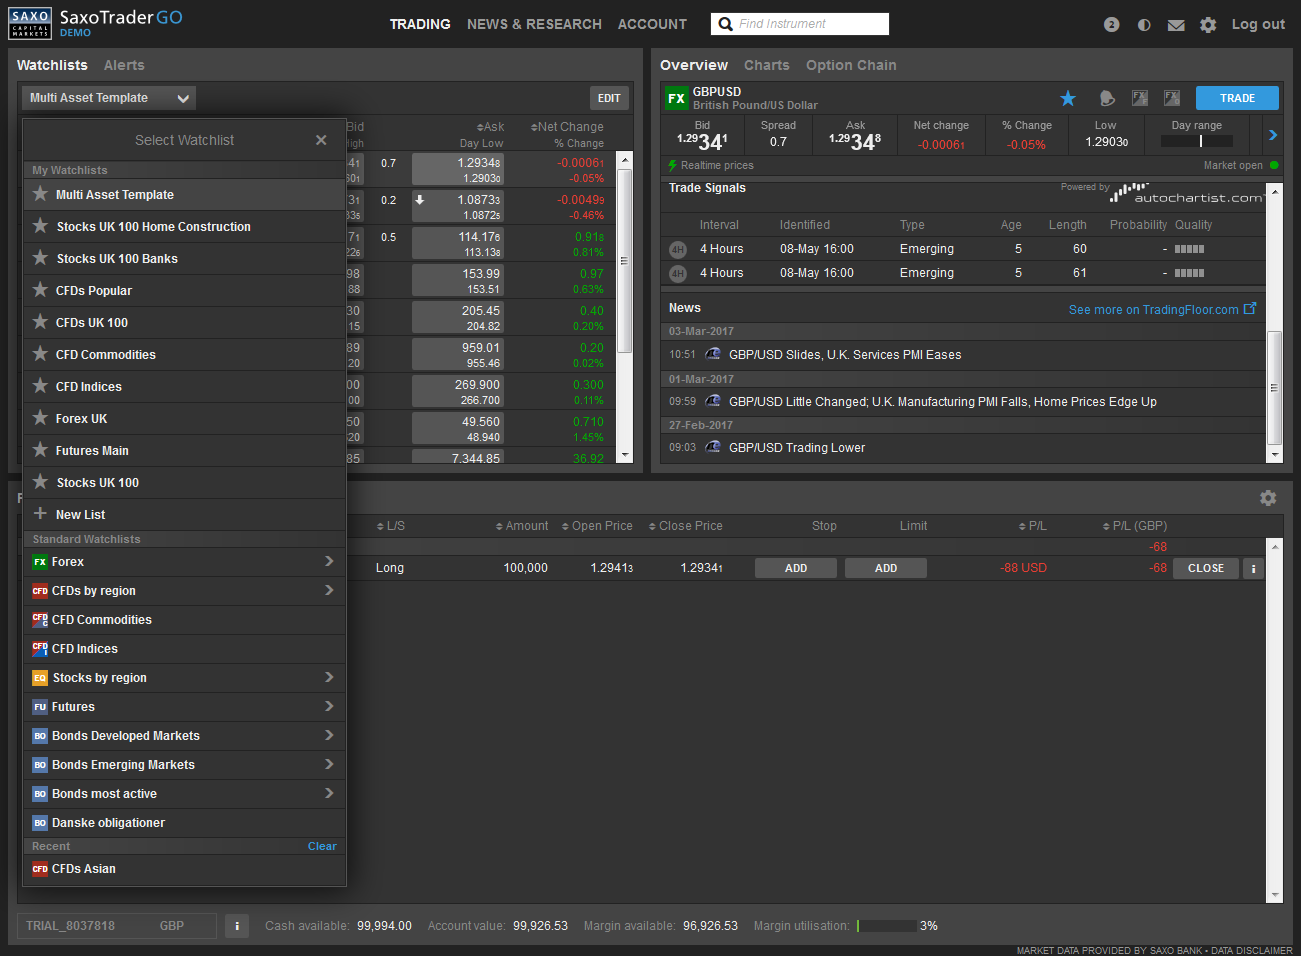 view of tools to create and manage watch lists on a Saxo brokerage account